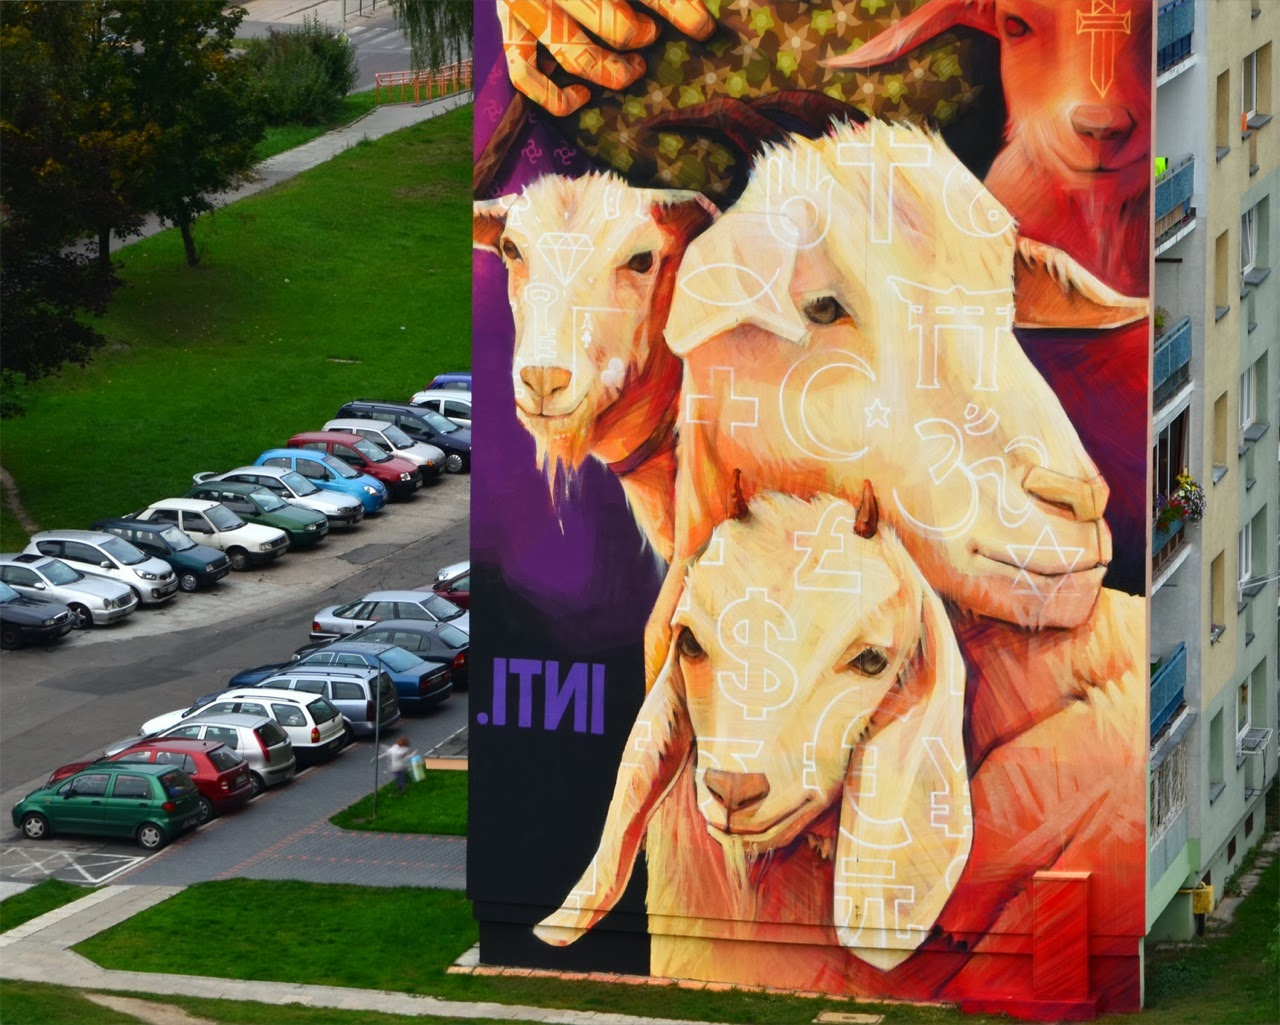 inti-new-mural-in-lodz-poland-03